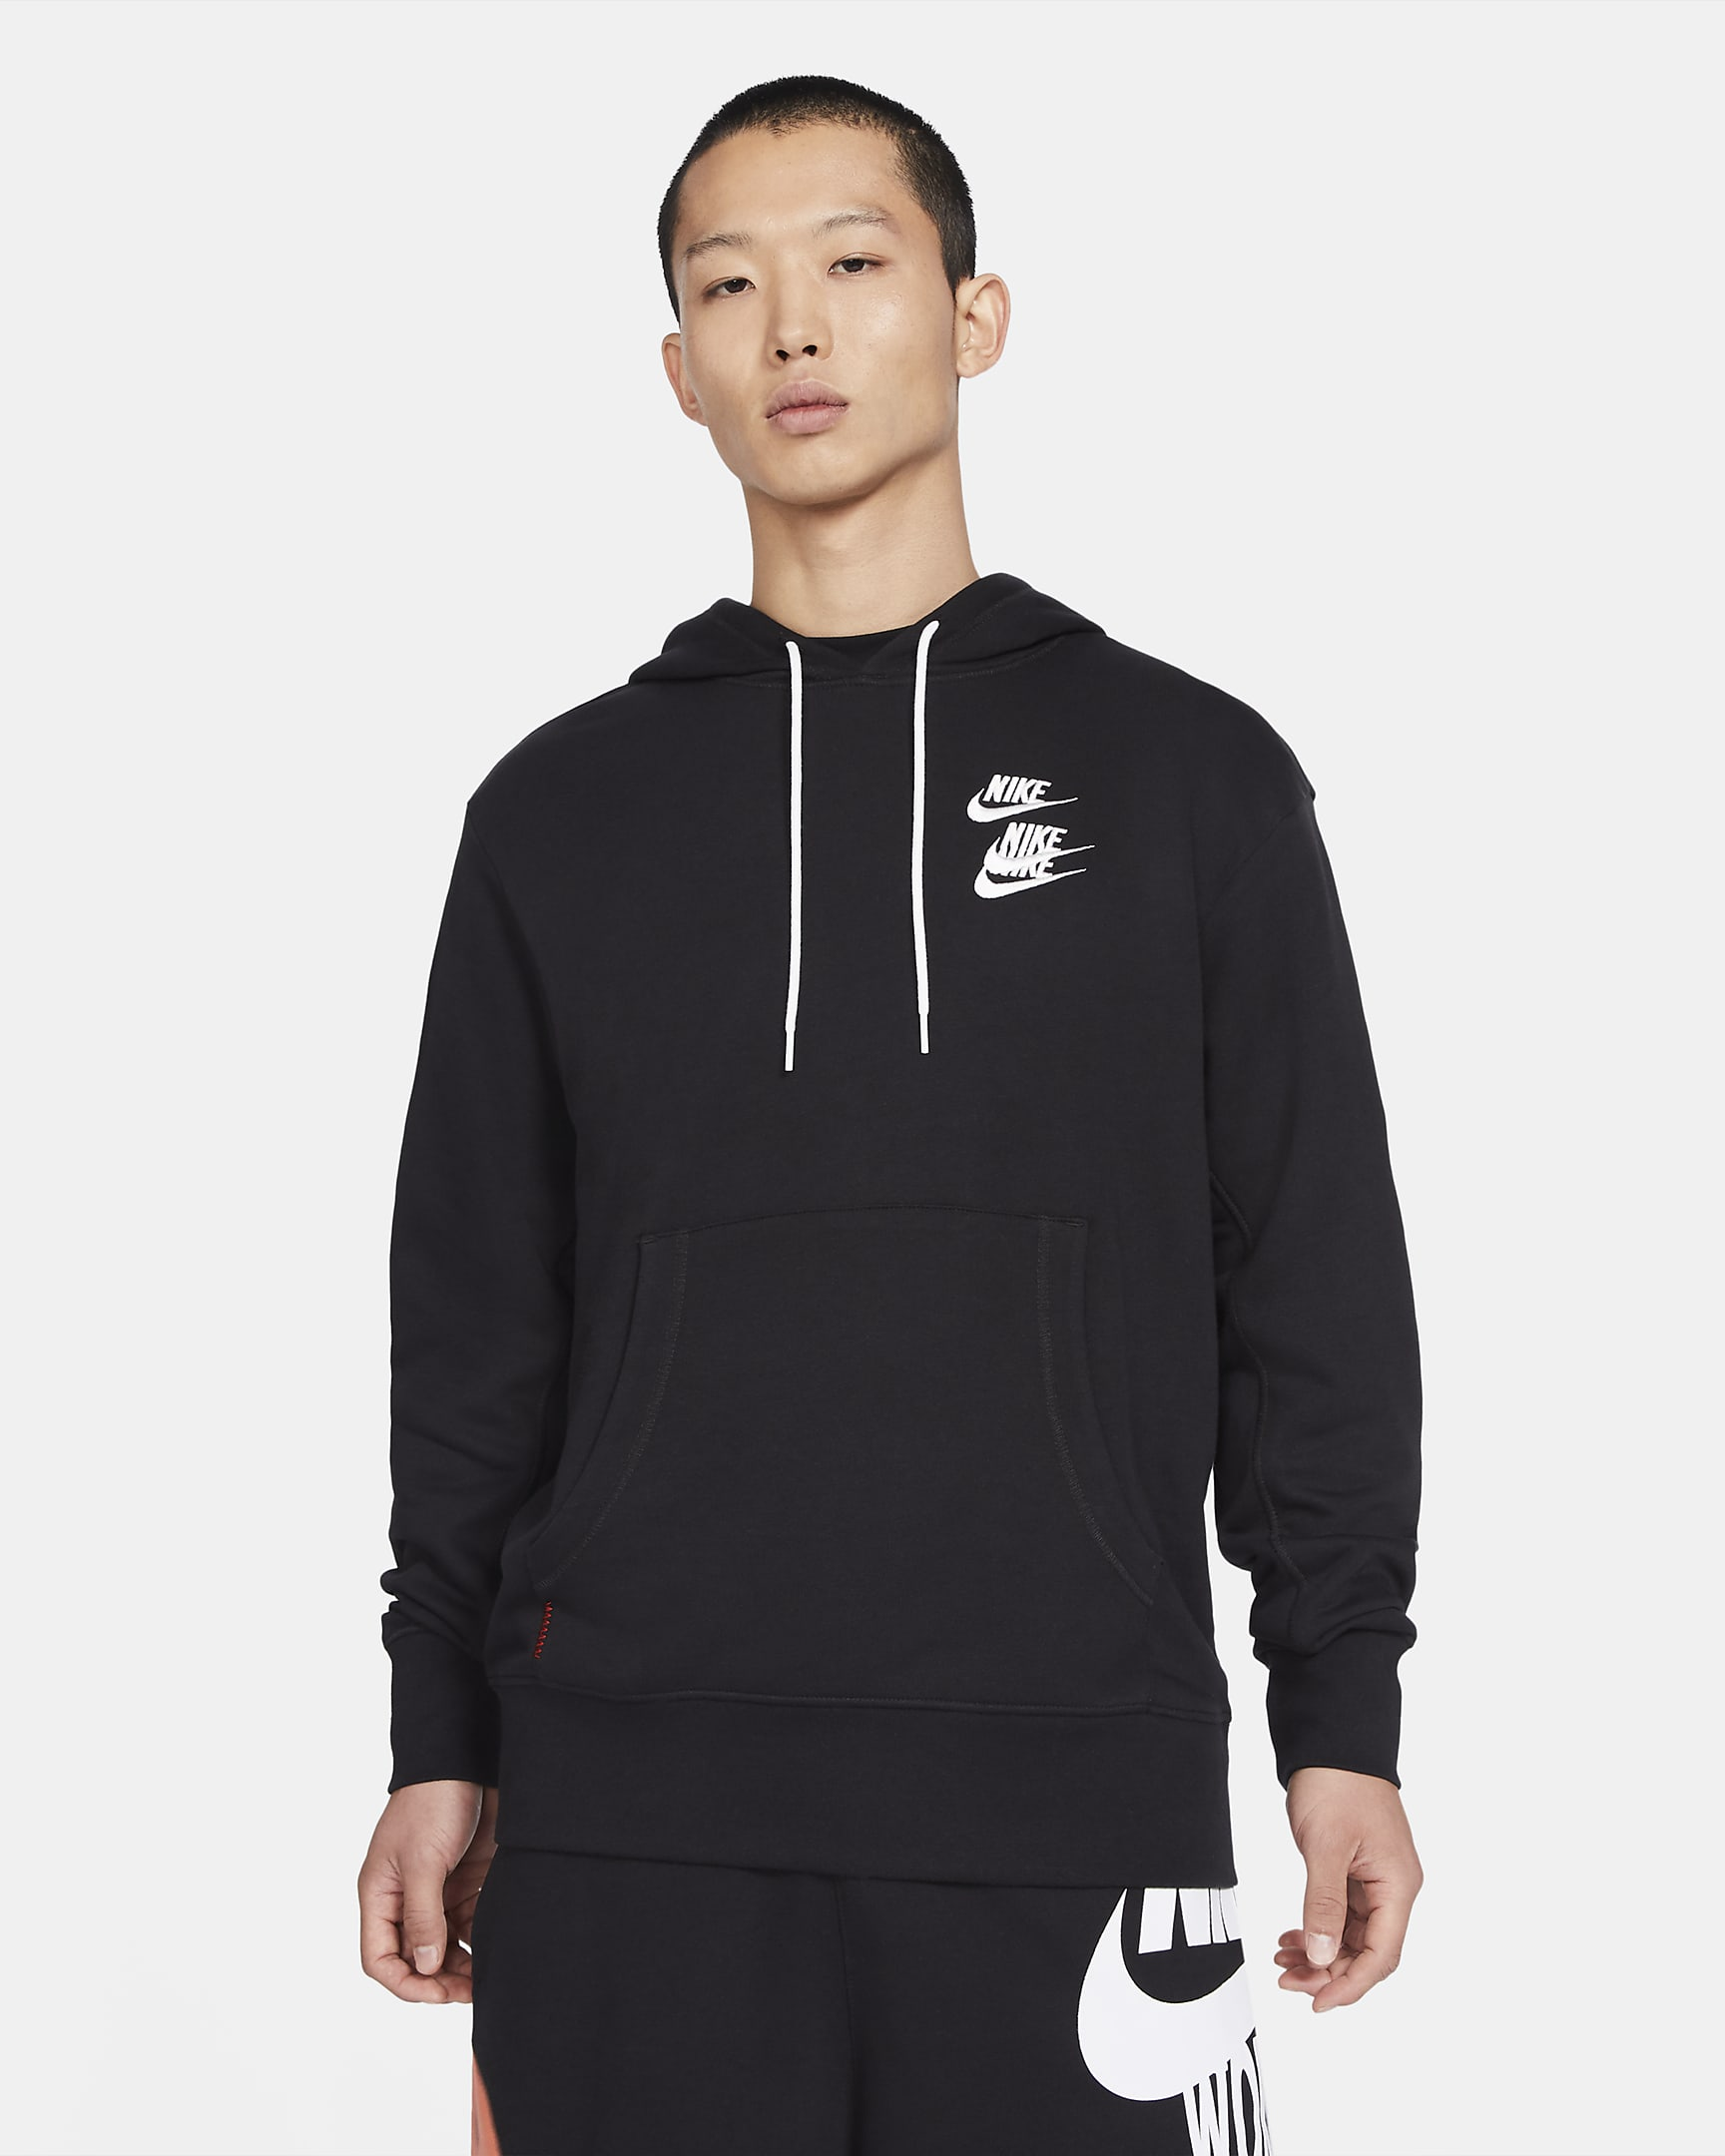 sportswear-pullover-french-terry-mens-hoodie-Sznwfc-12